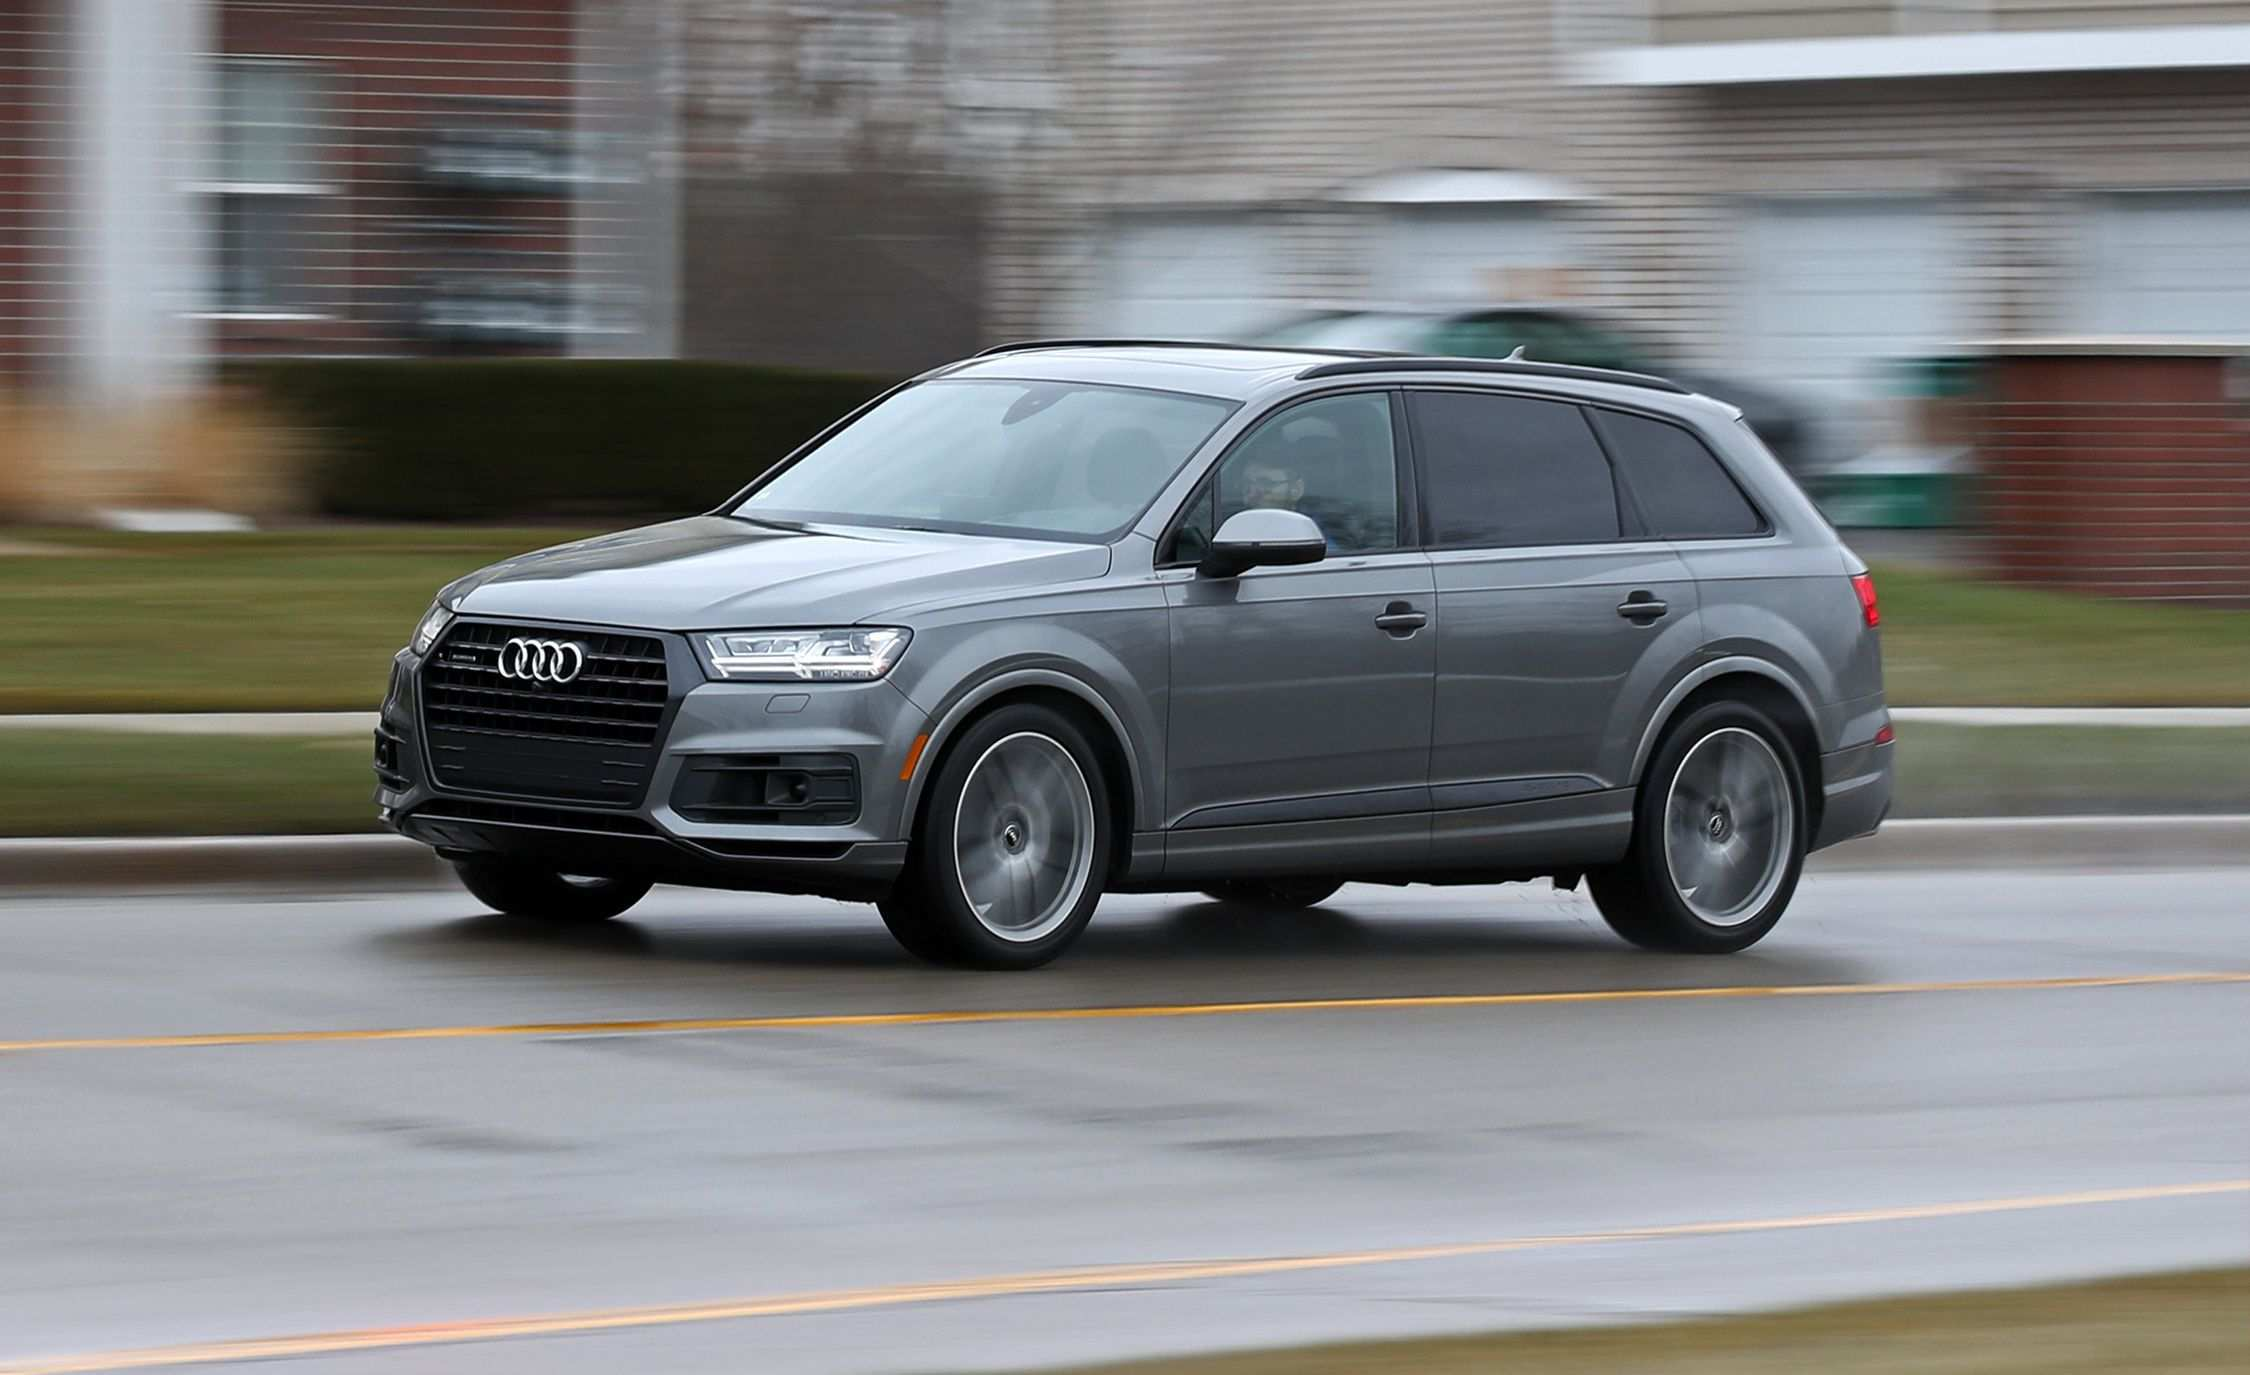 45 All New Audi Q7 2020 Release Date Review